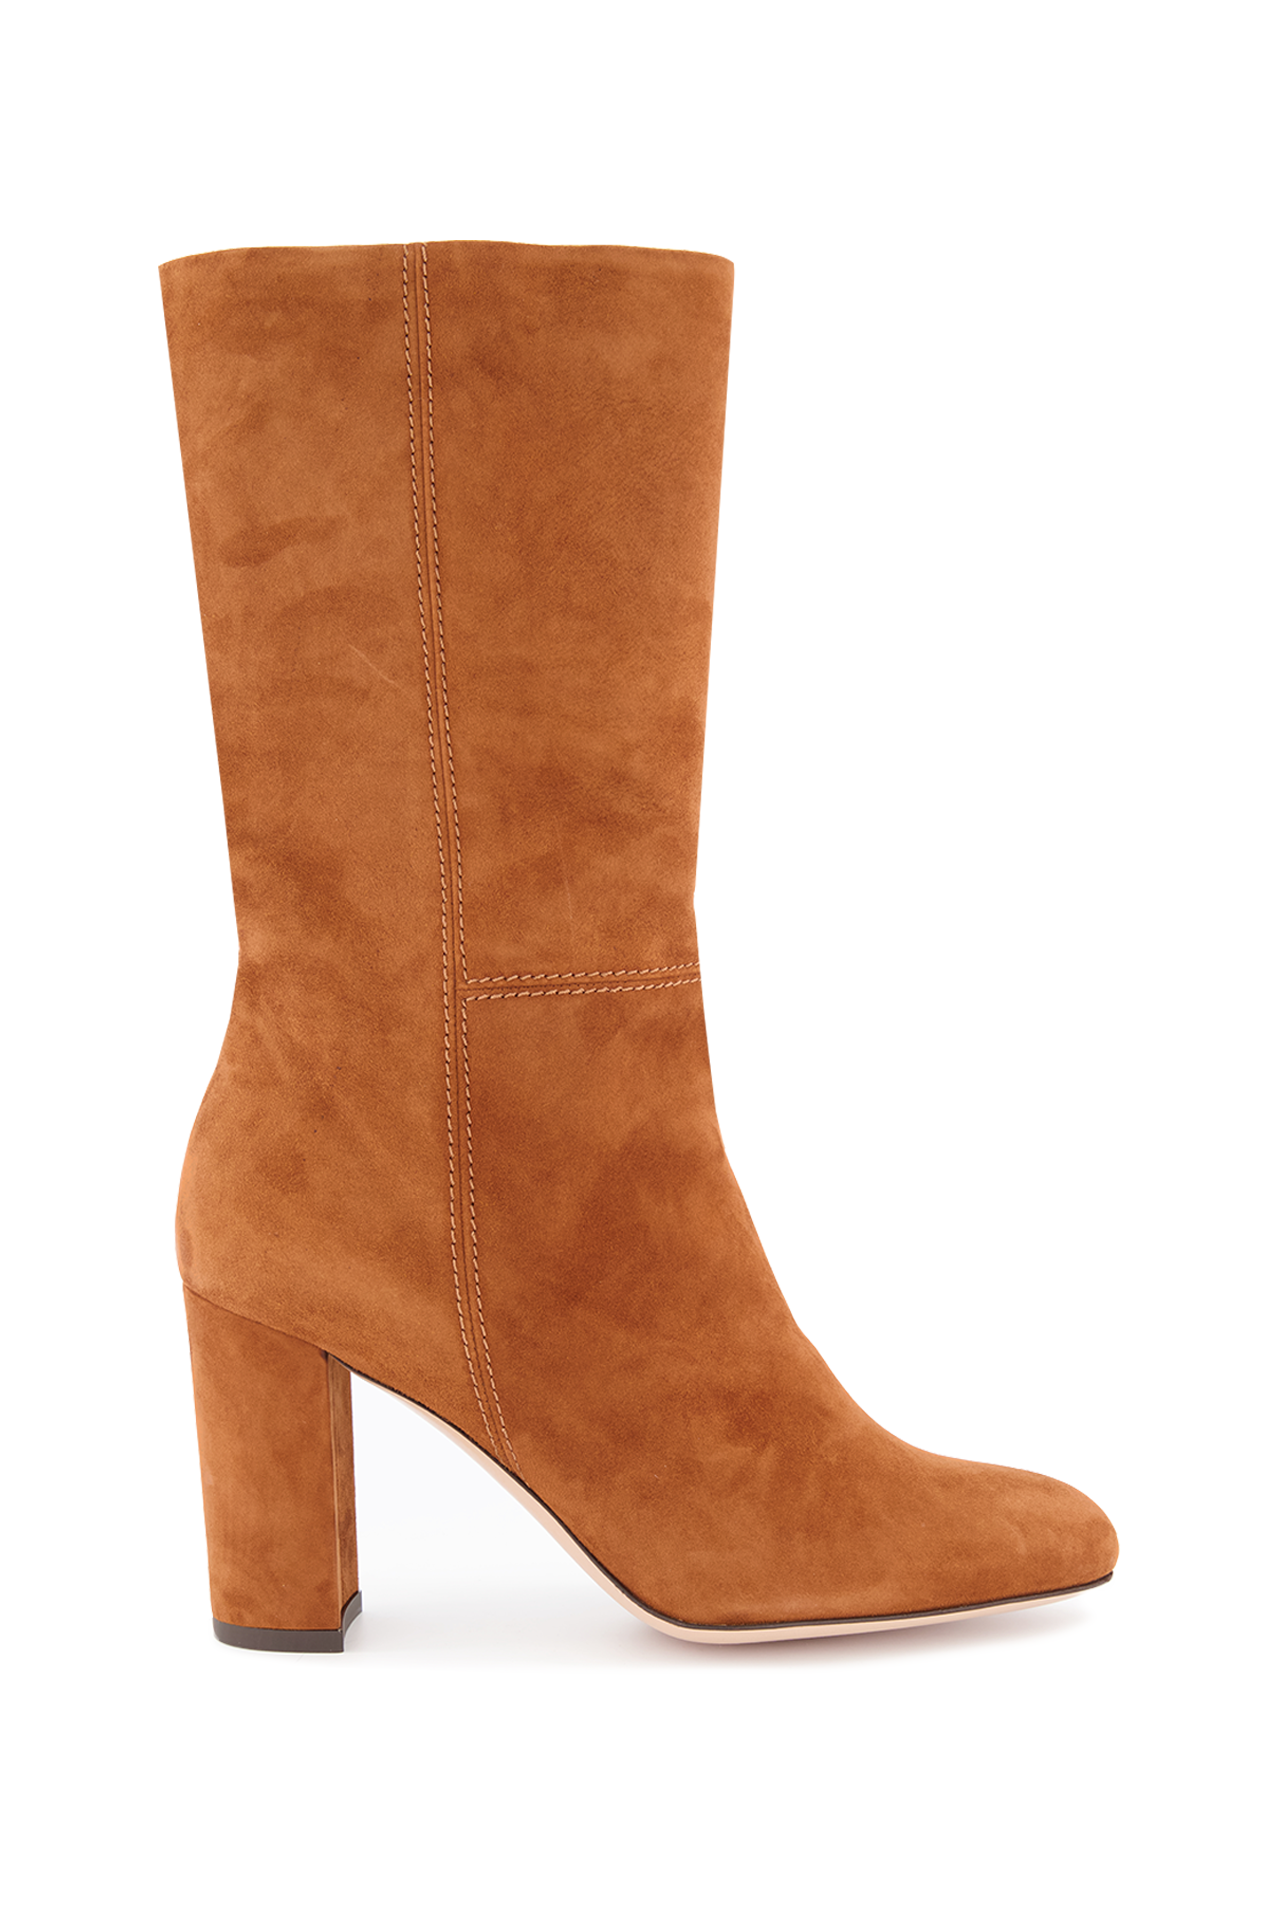 Side view image of Marion Parke Delila 85mm Suede Boot Camel